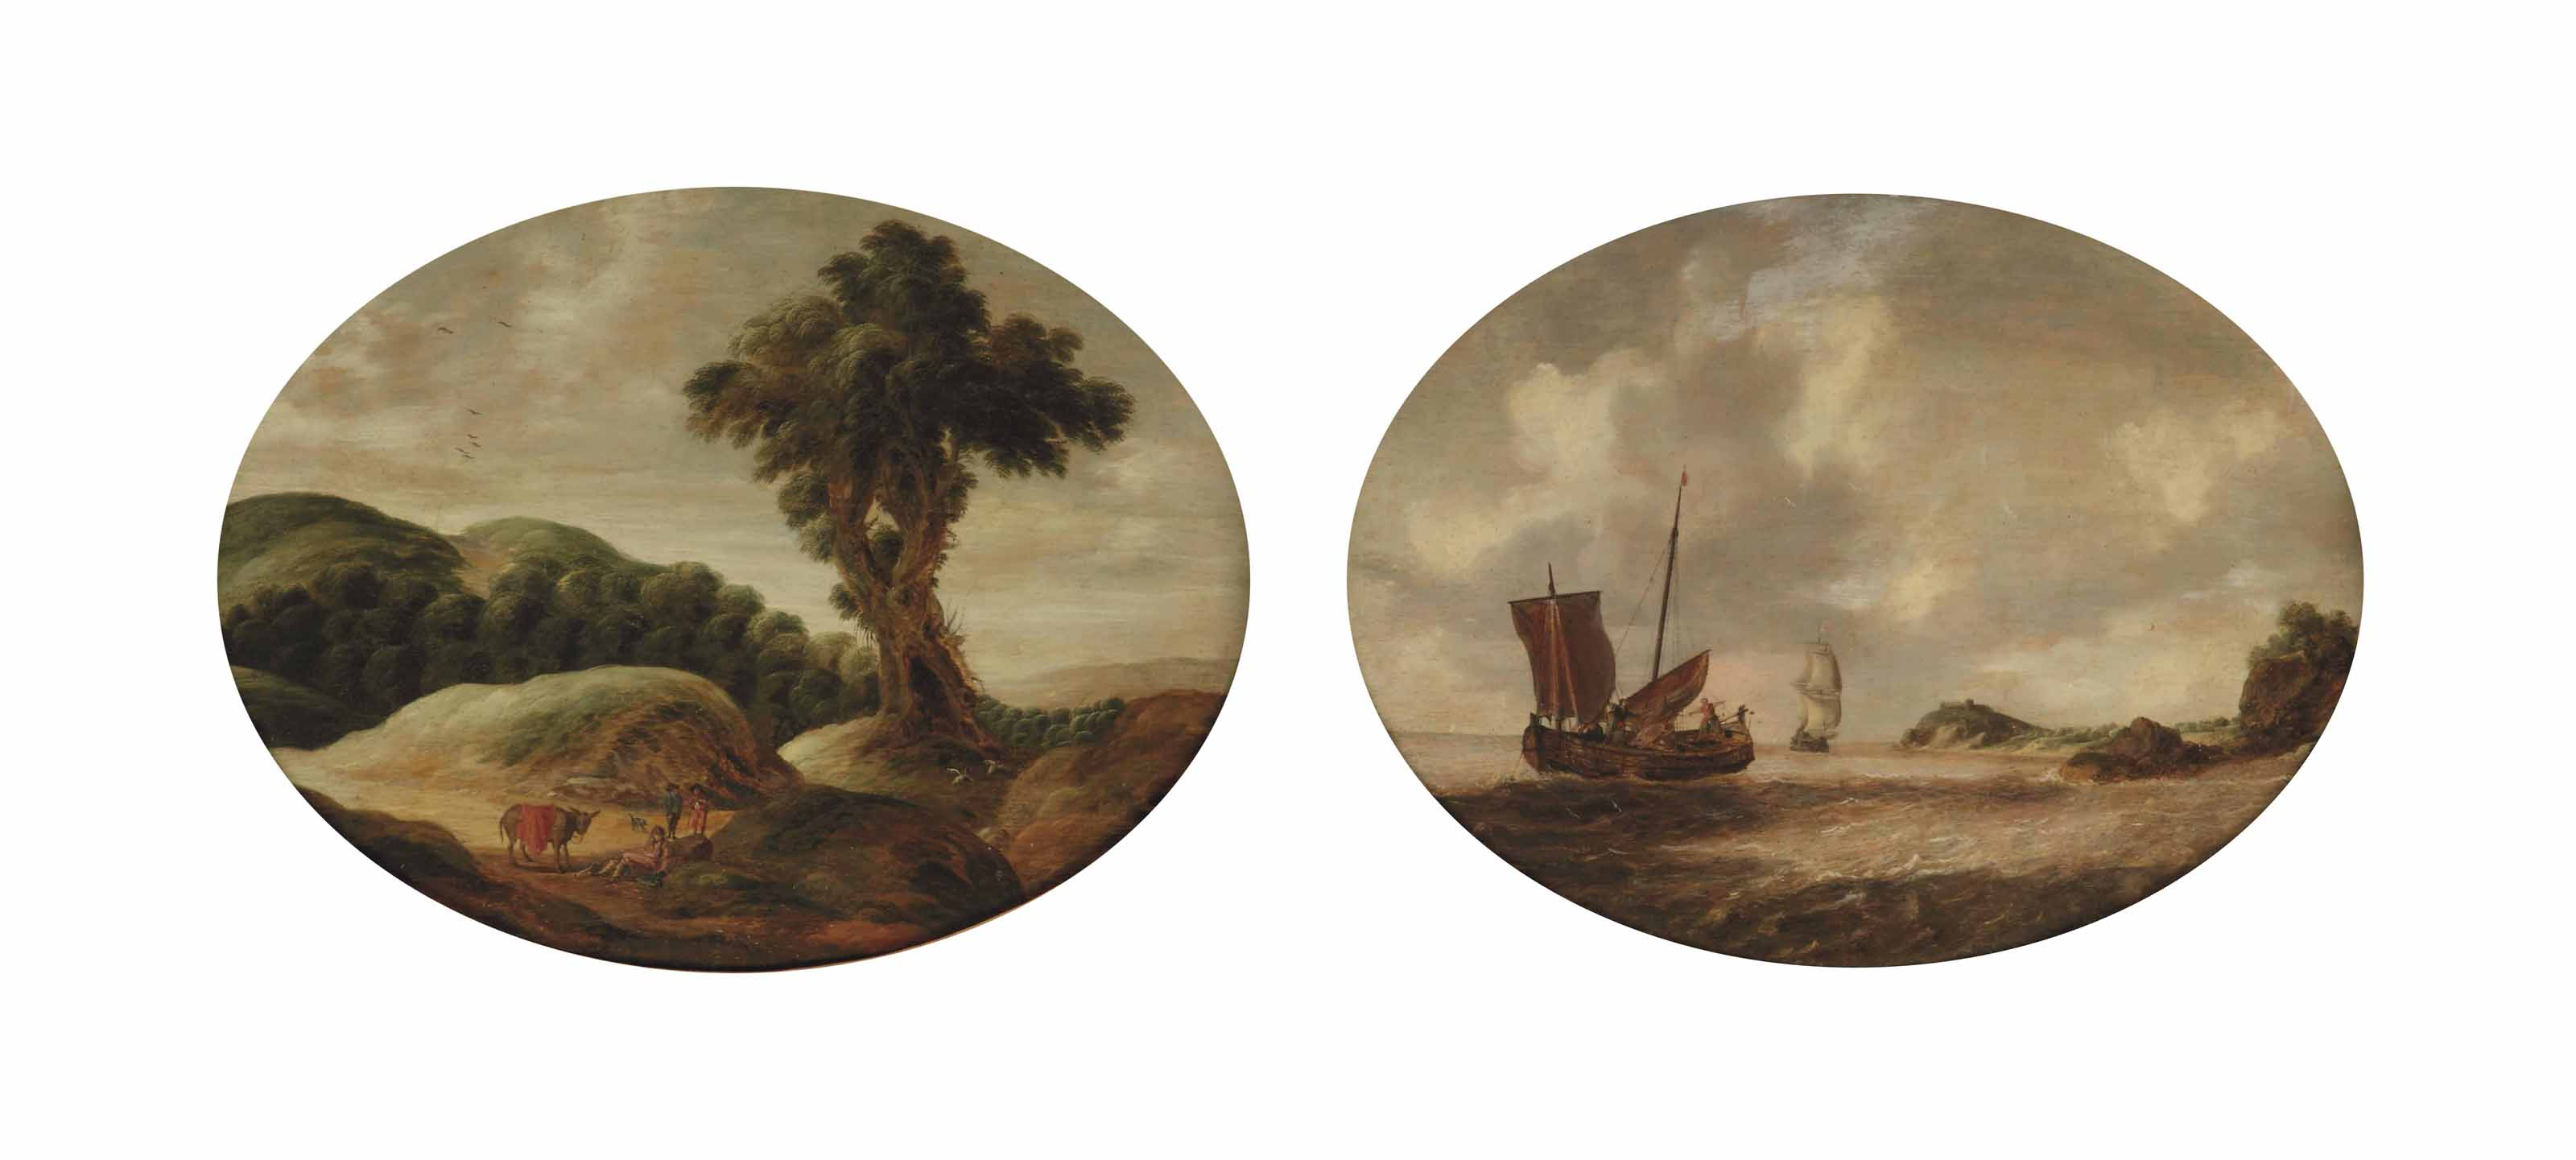 A hilly landscape with travellers resting on a track; and A coastal landscape with a small ship and a man-o'-war on choppy waters